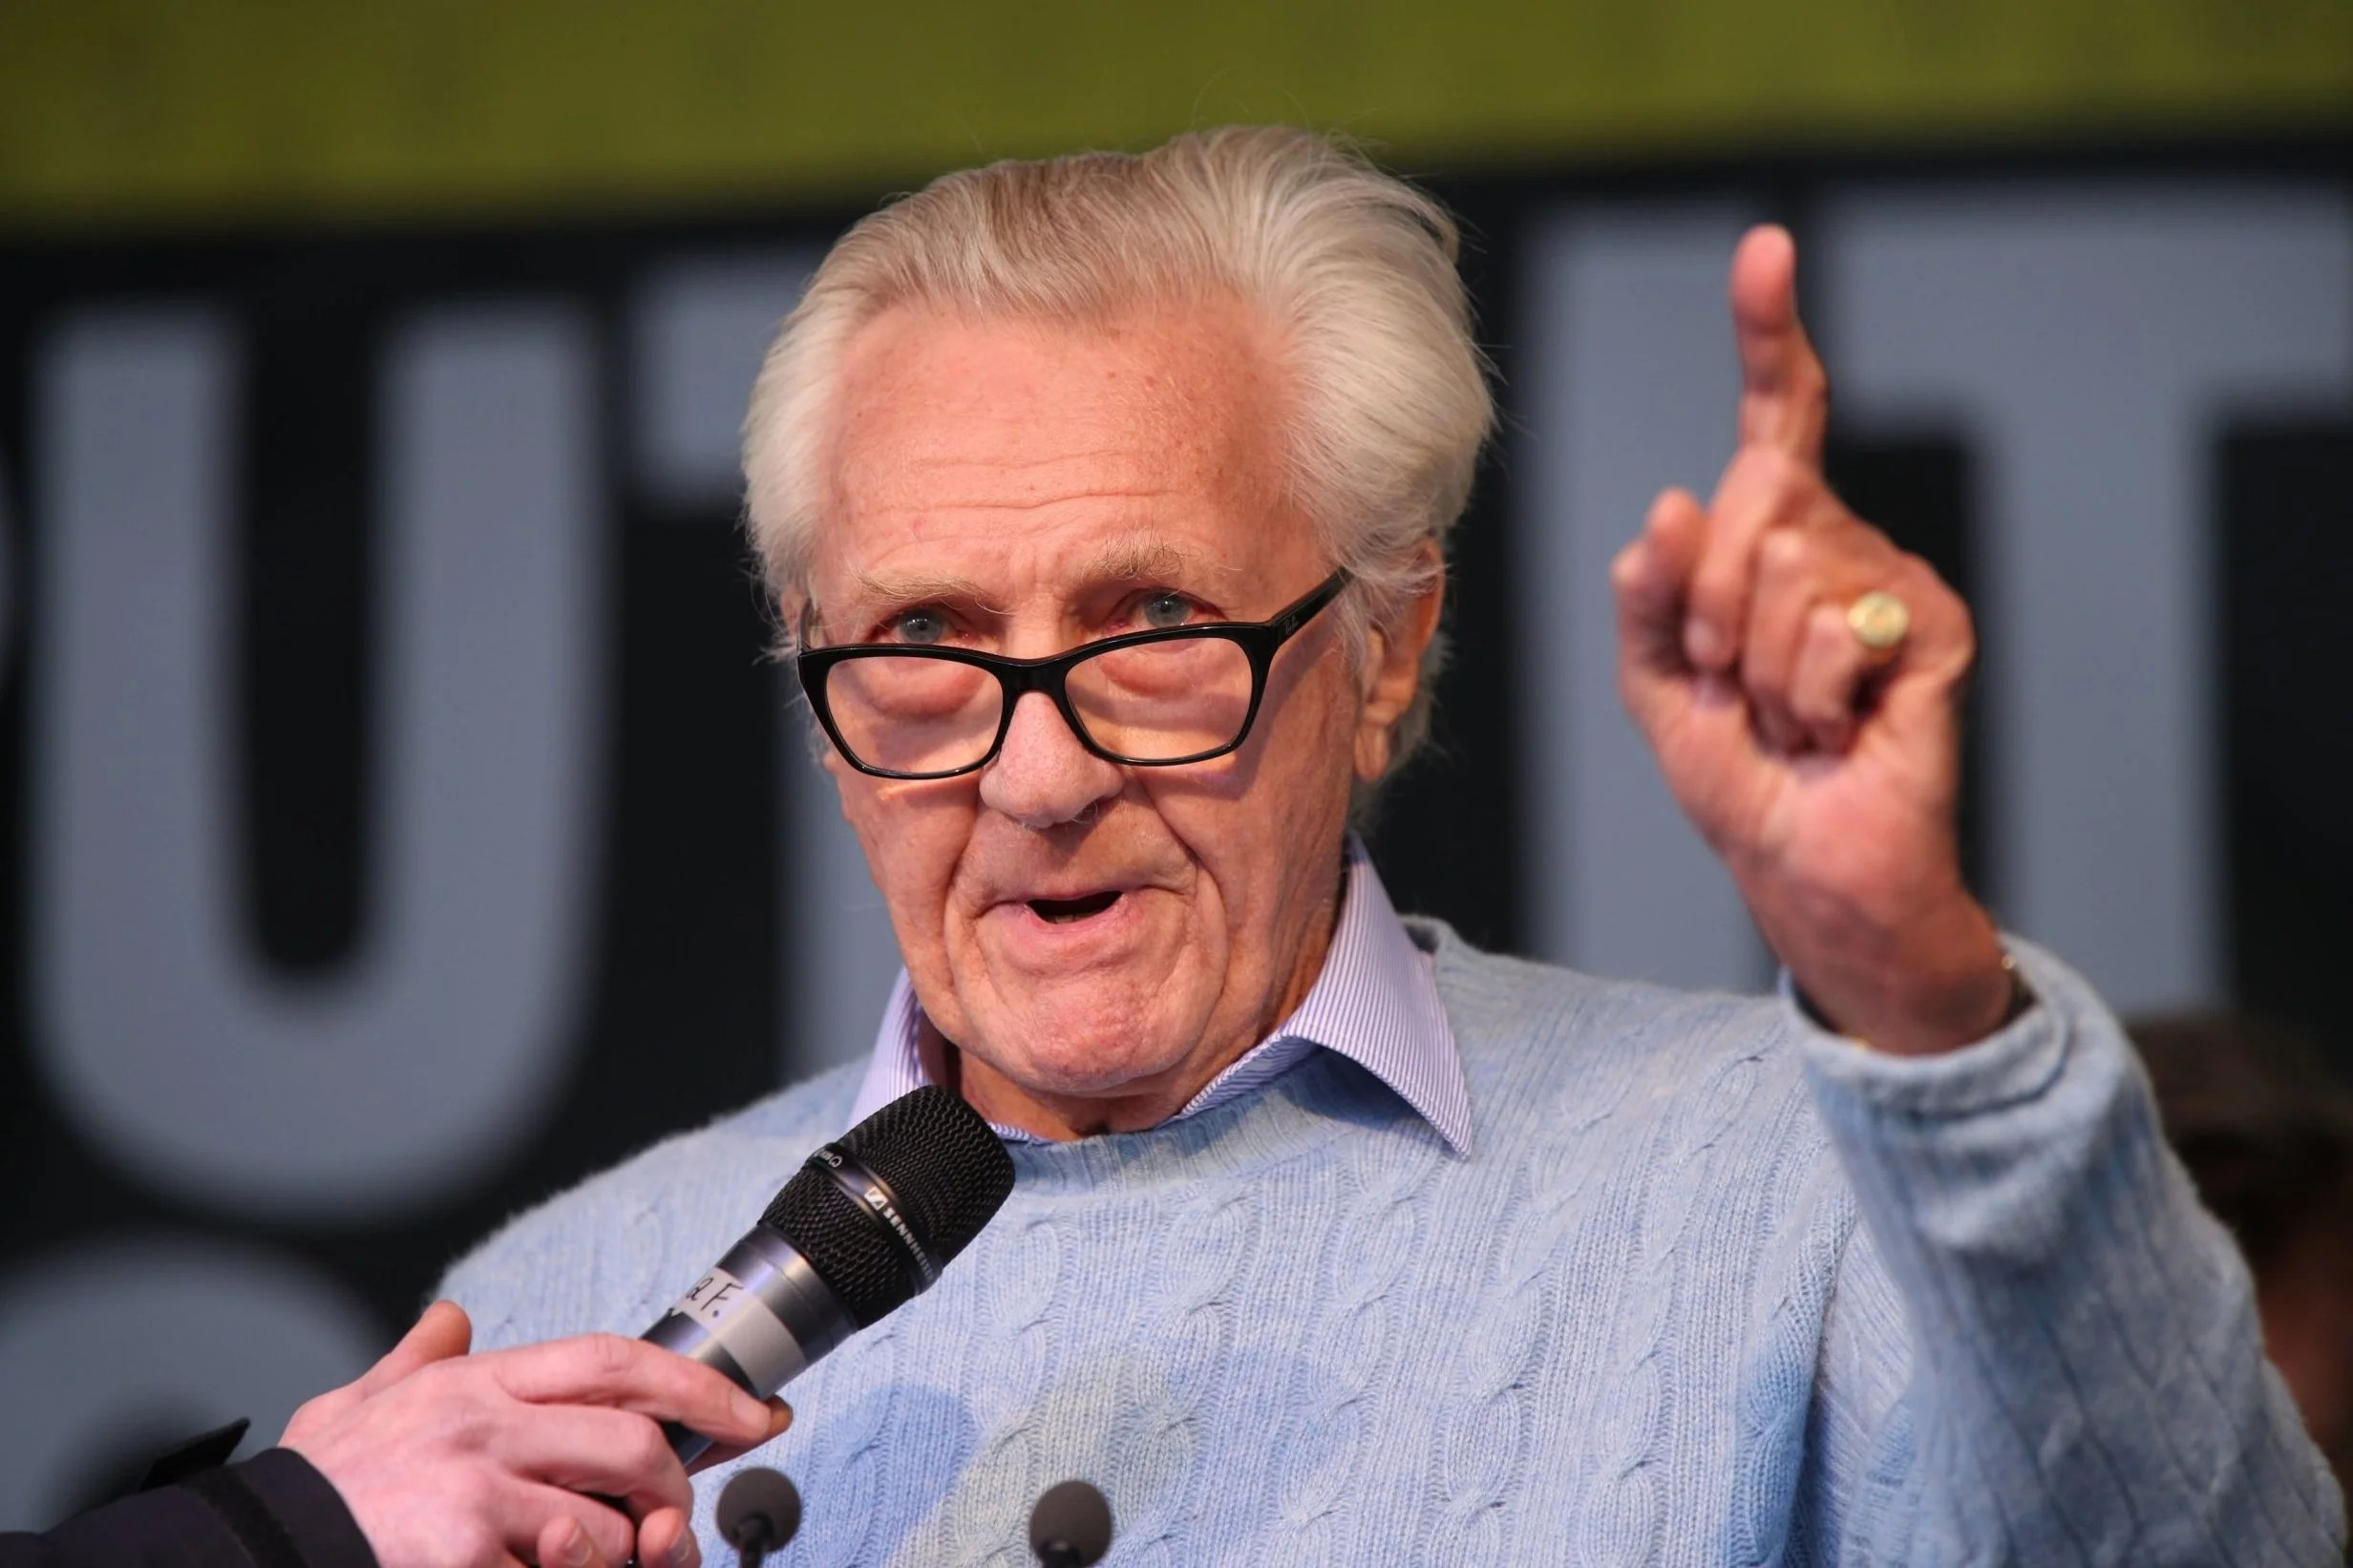 michaelheseltine2005 Heseltine: I'll stay a Tory and fight our Right-wing zealots